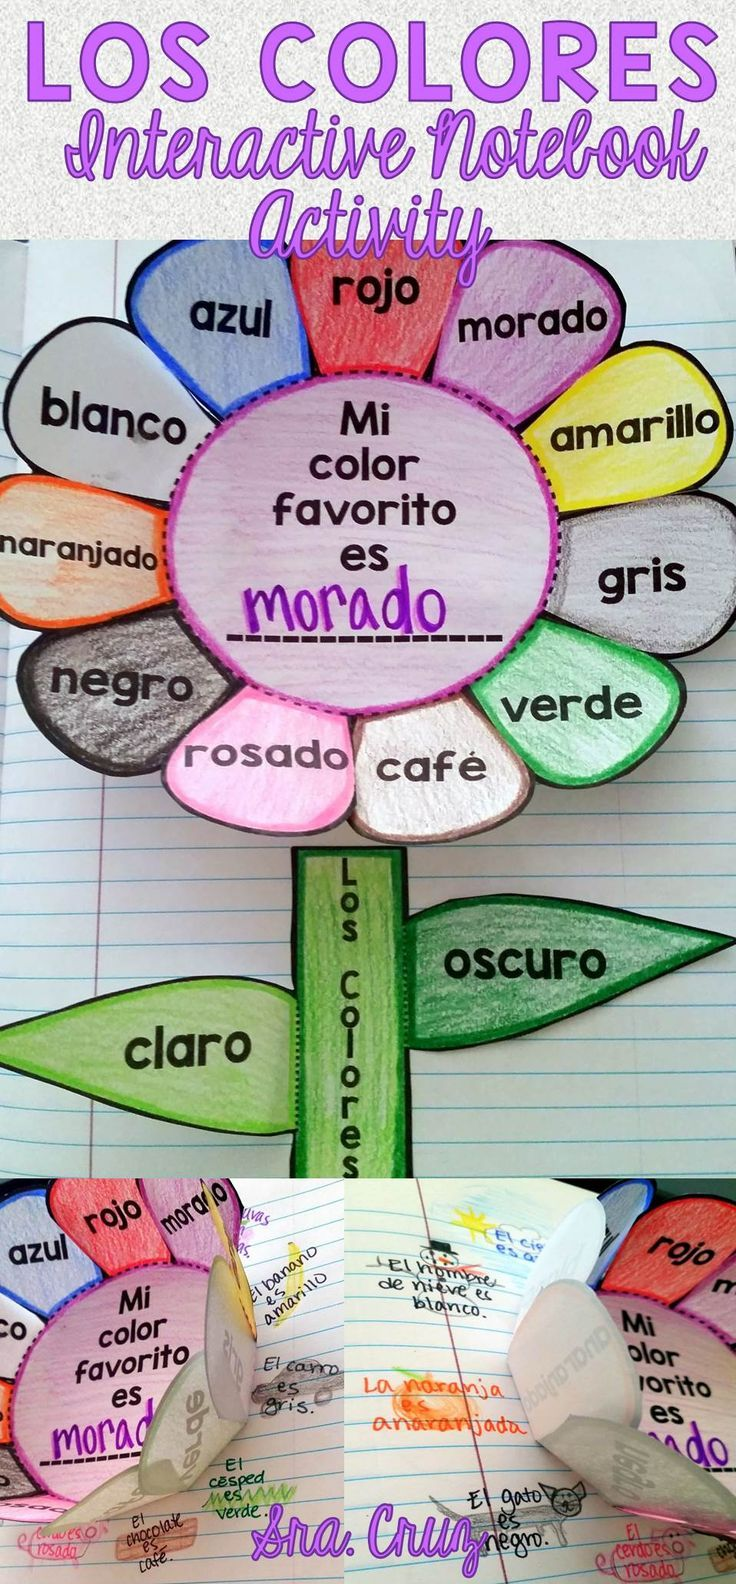 915 best school images on Pinterest | Spanish classroom, Learn ...